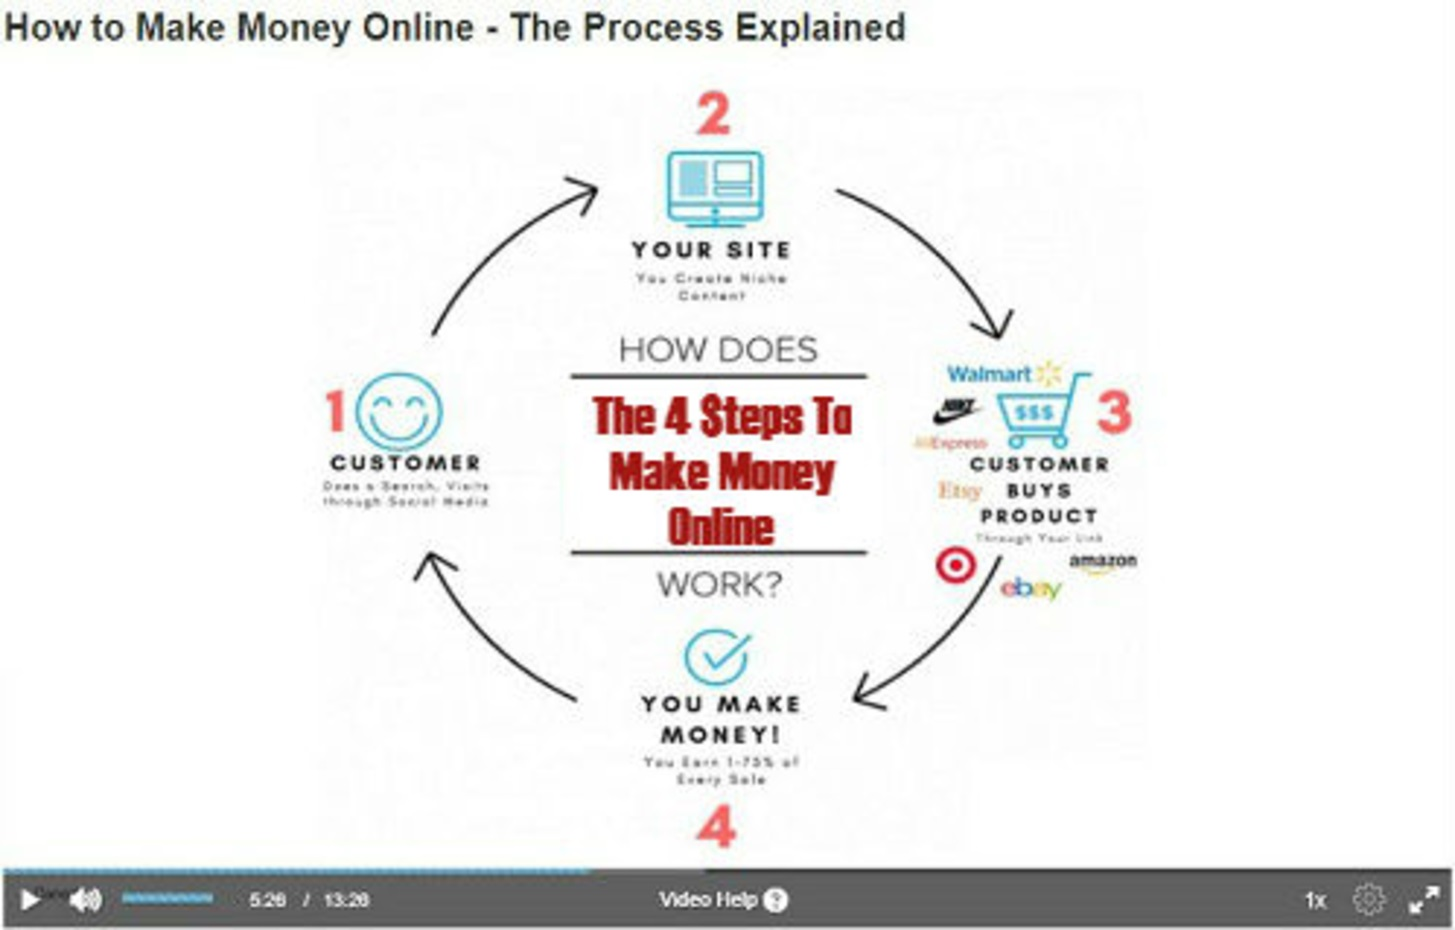 the 4 steps to male money online video pic